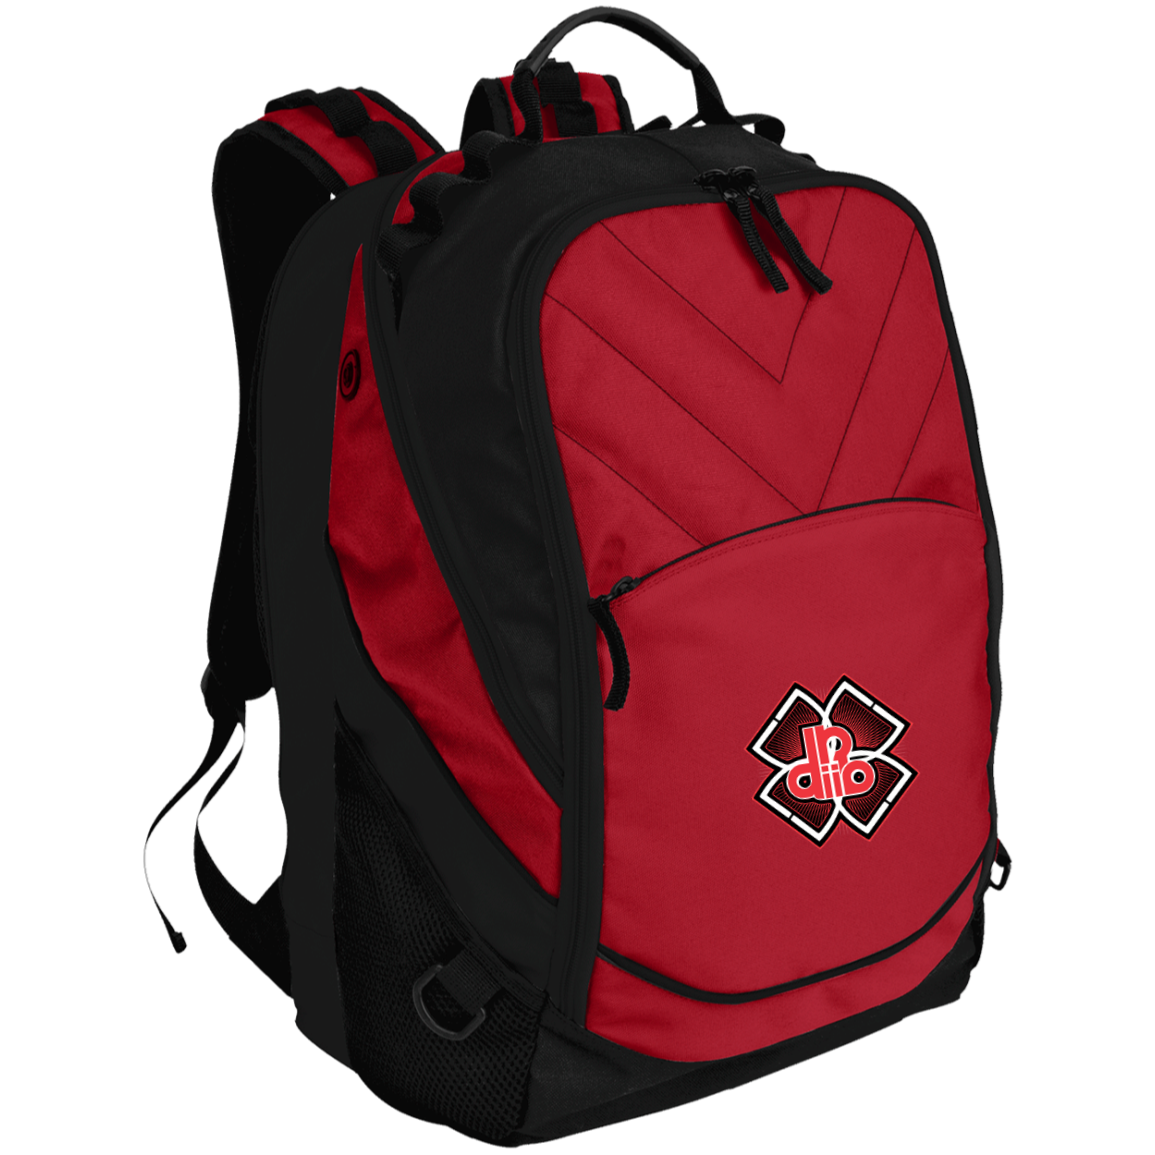 DDIIRO  Laptop Computer Backpack